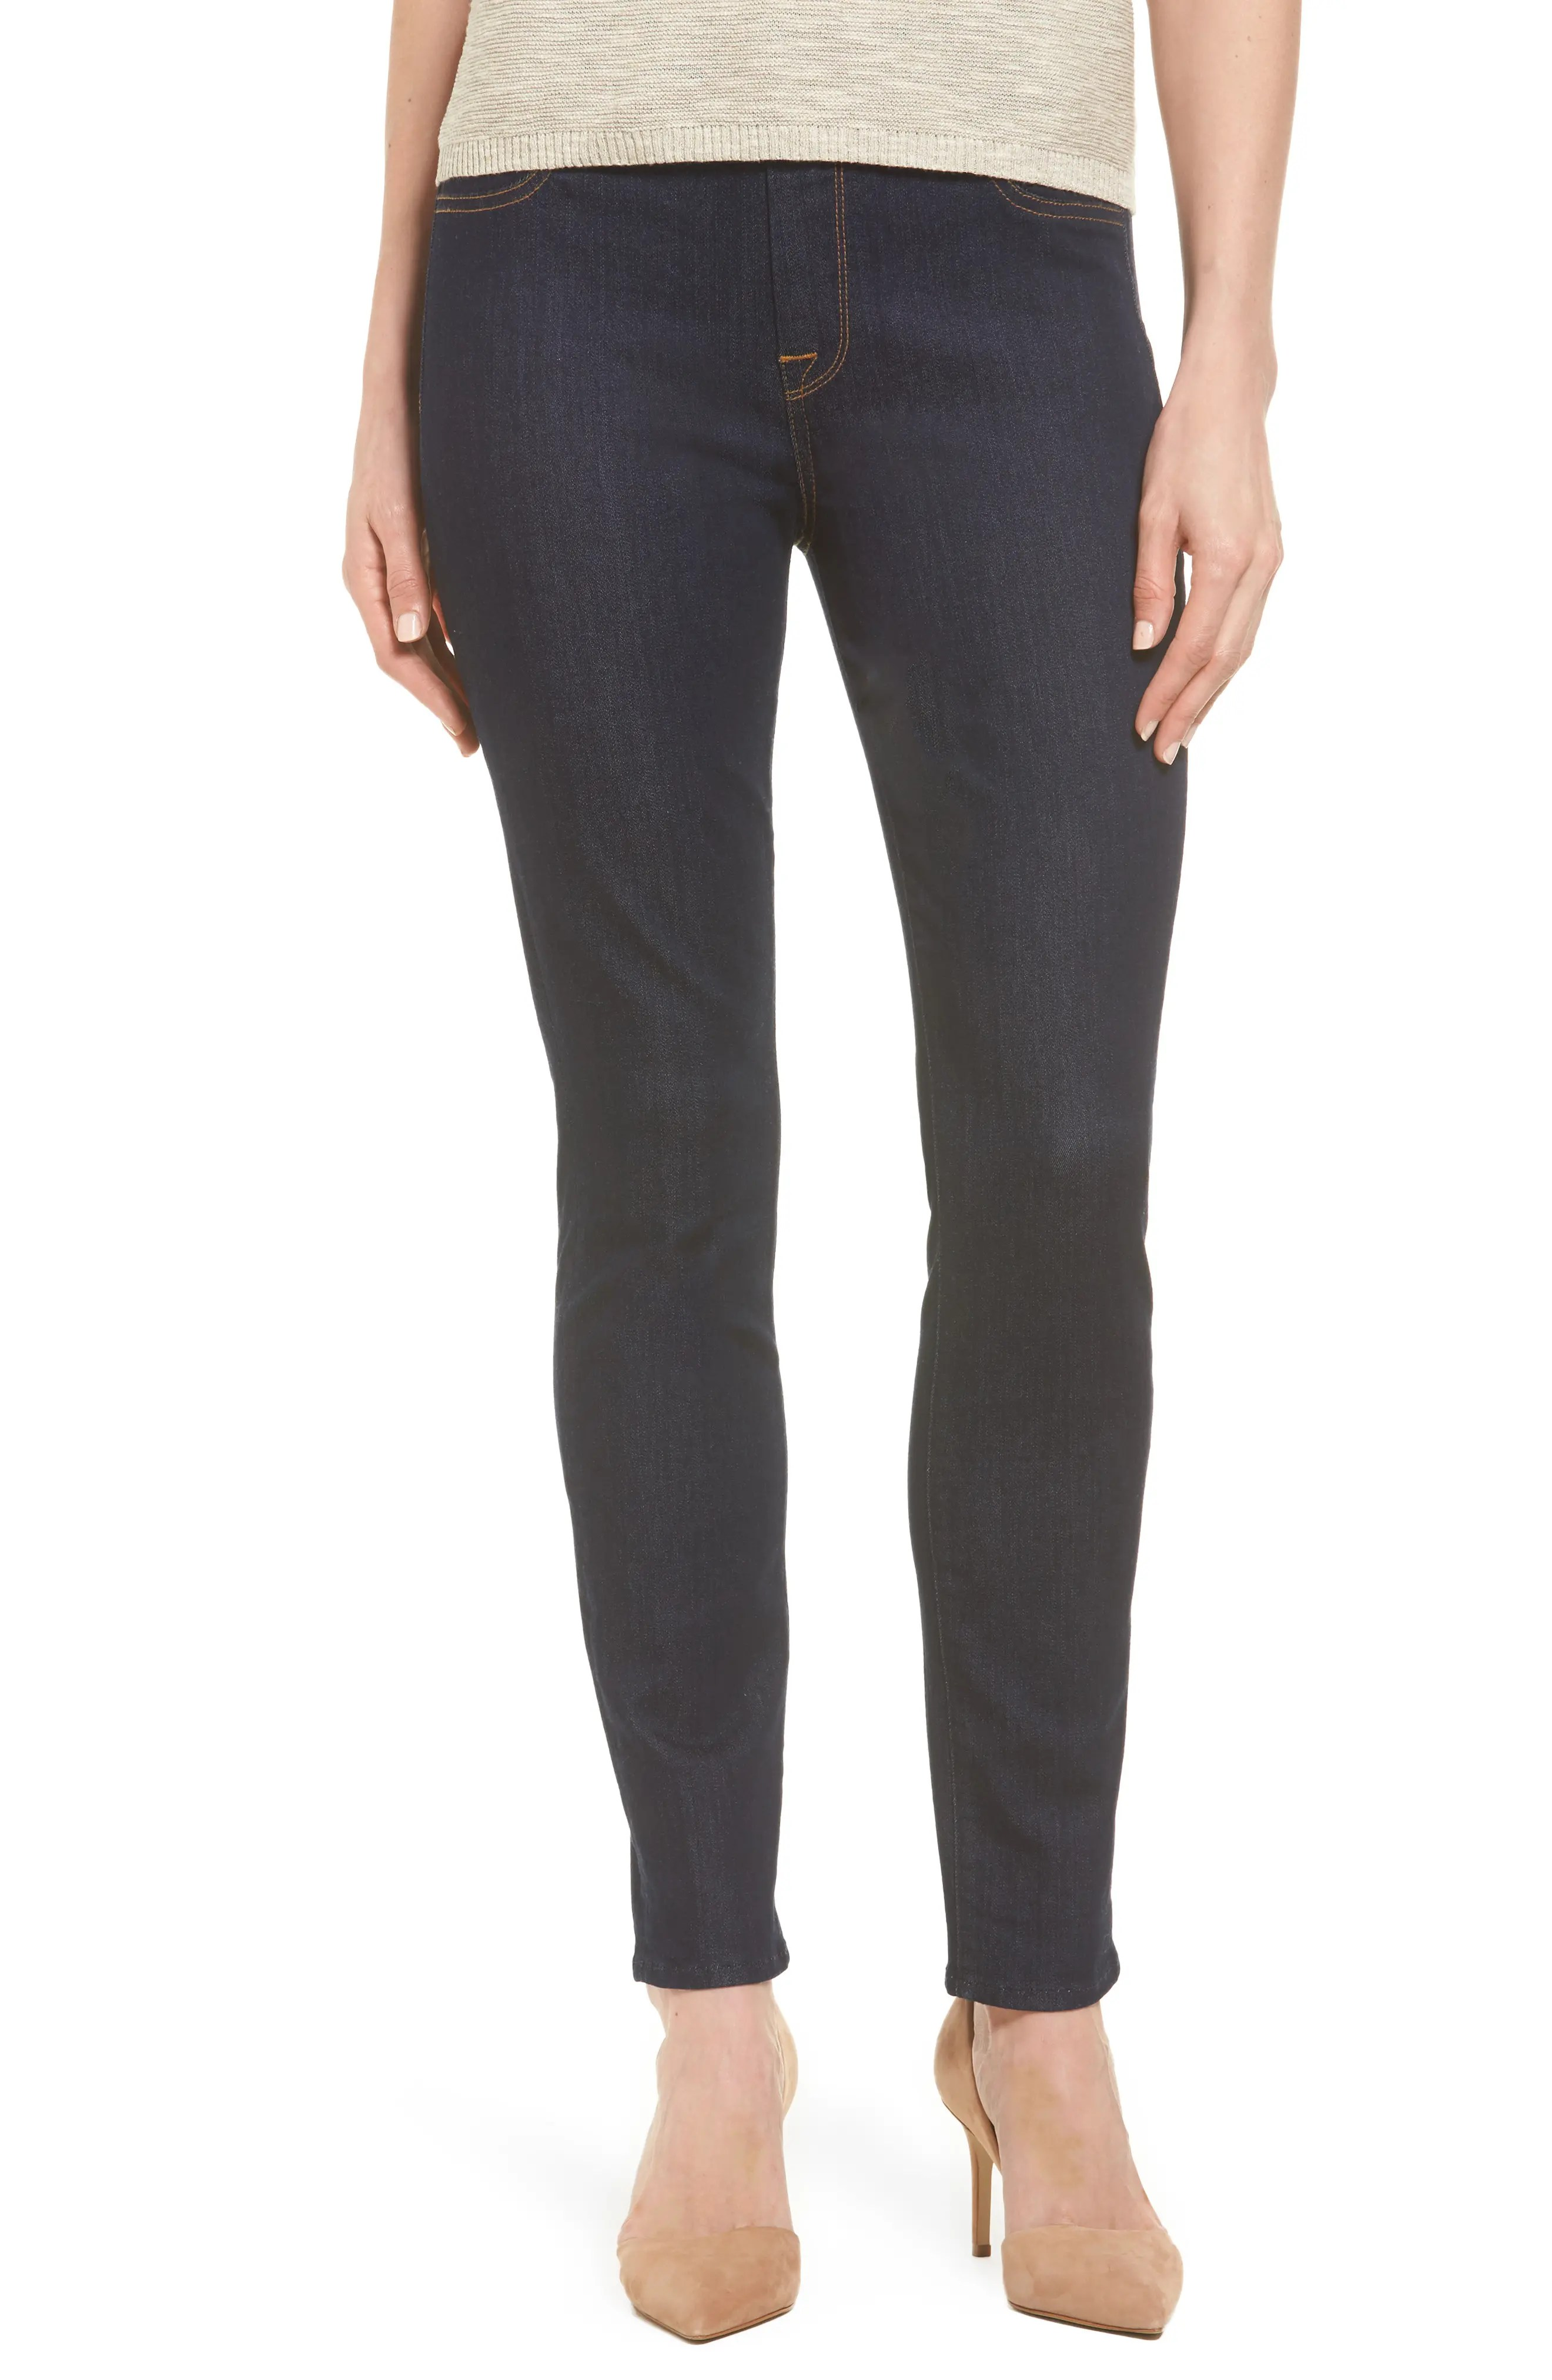 Jen by for all mankind comfort stretch denim skinny jeans riche touch rinsed night also women   nordstrom rh shoprdstrom